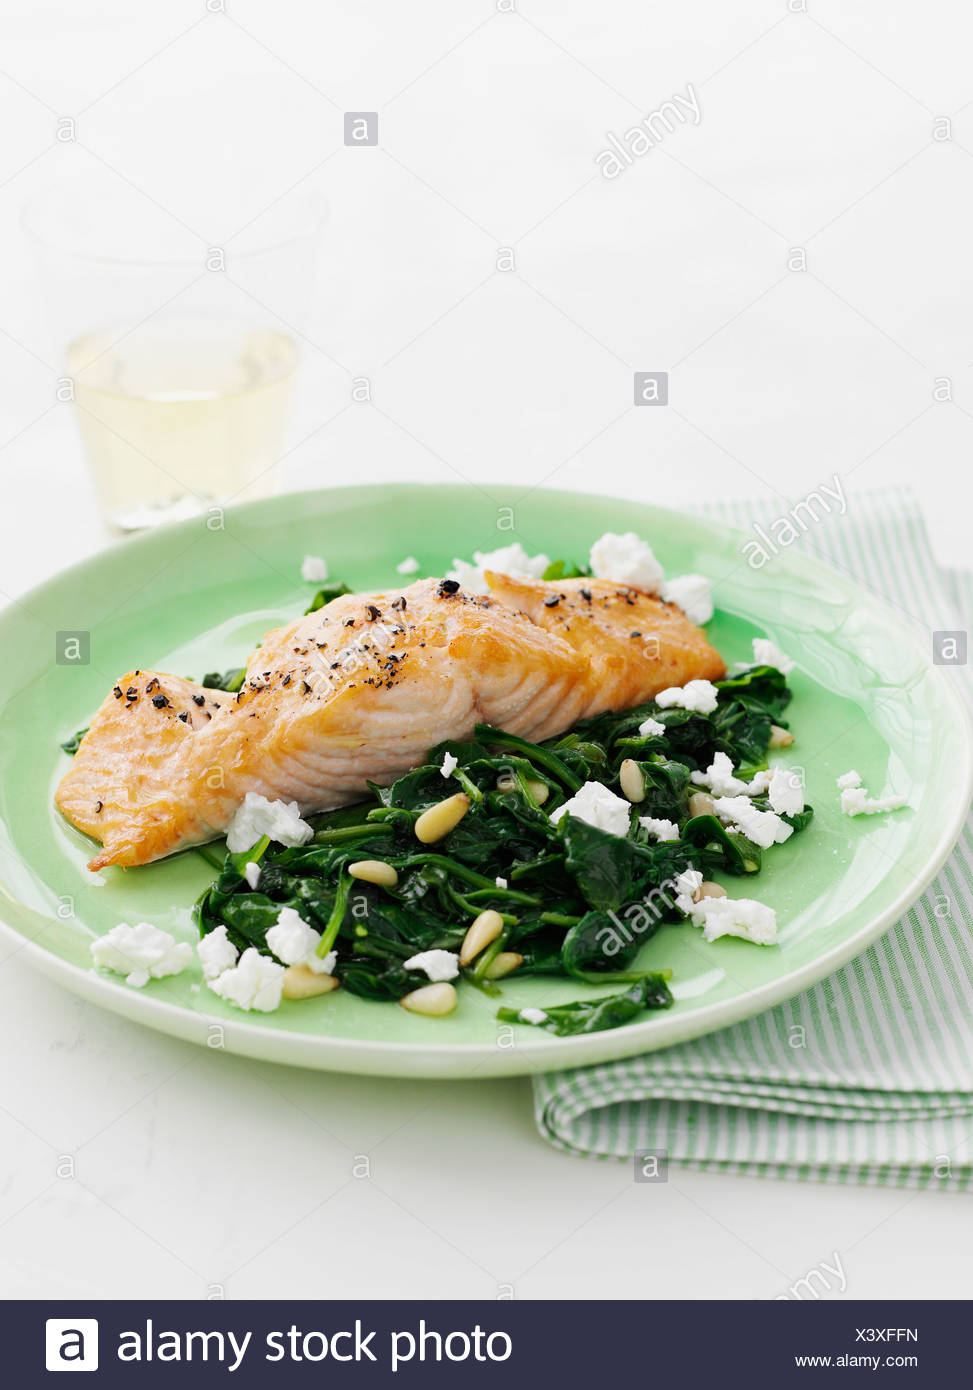 Plate of salmon with spinach - Stock Image